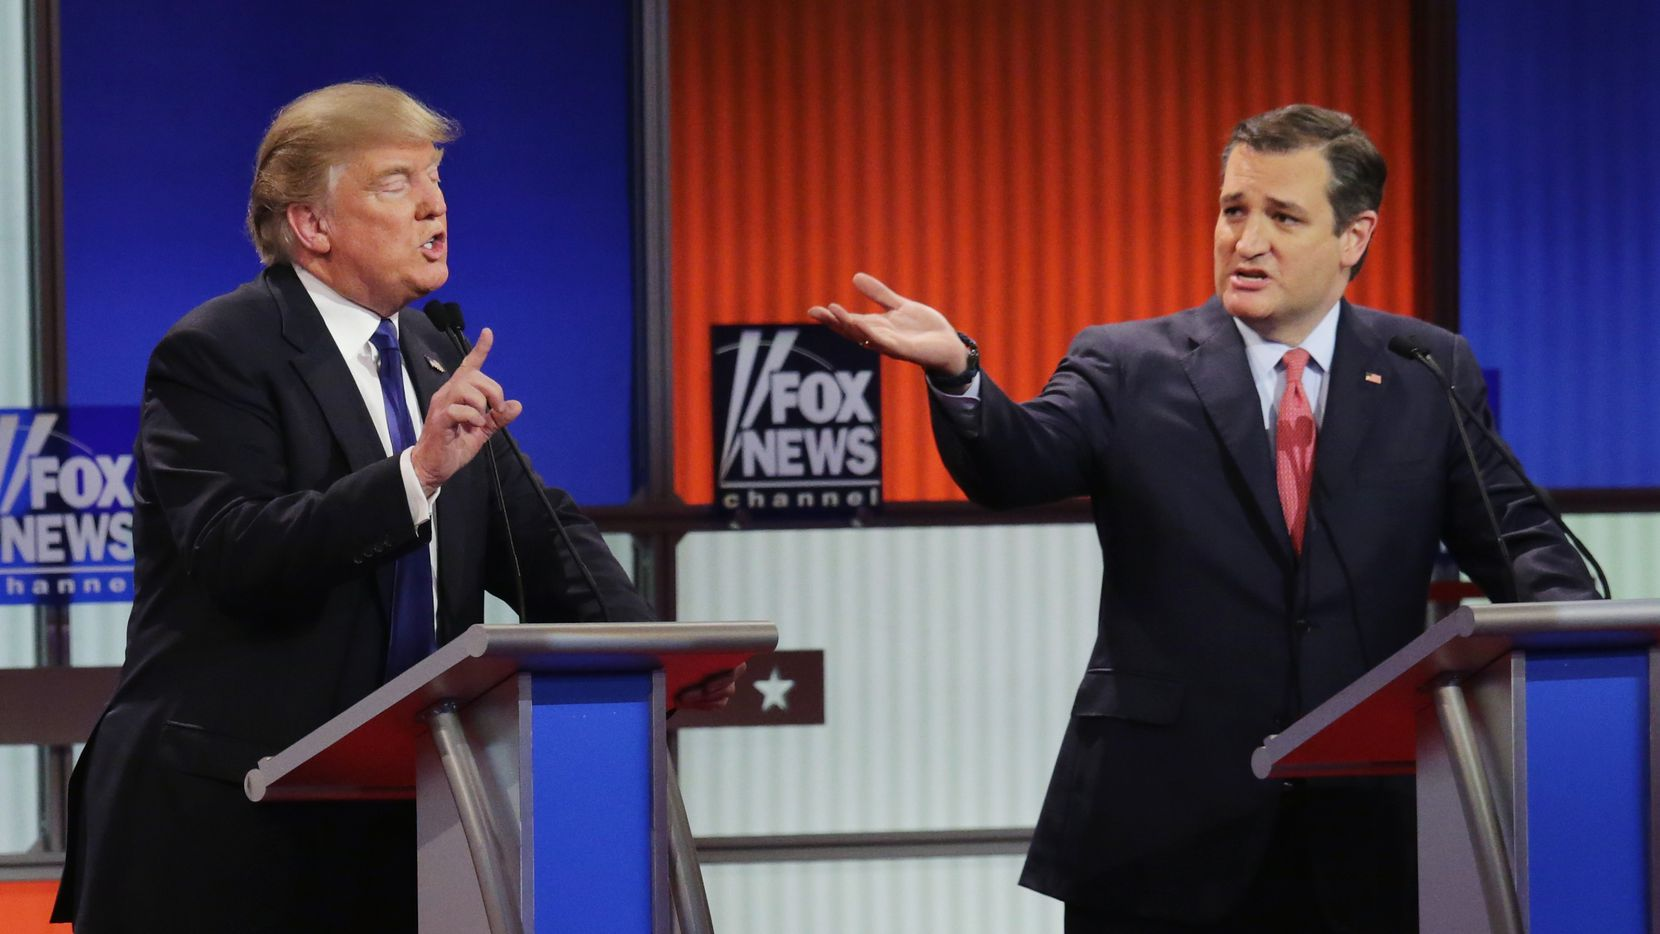 Republican presidential candidates (Lto R) Donald Trump and Sen. Ted Cruz (R-TX) participate in a debate sponsored by Fox News at the Fox Theatre on March 3, 2016 in Detroit, Michigan. Voters in Michigan will go to the polls March 8 for the State's primary.